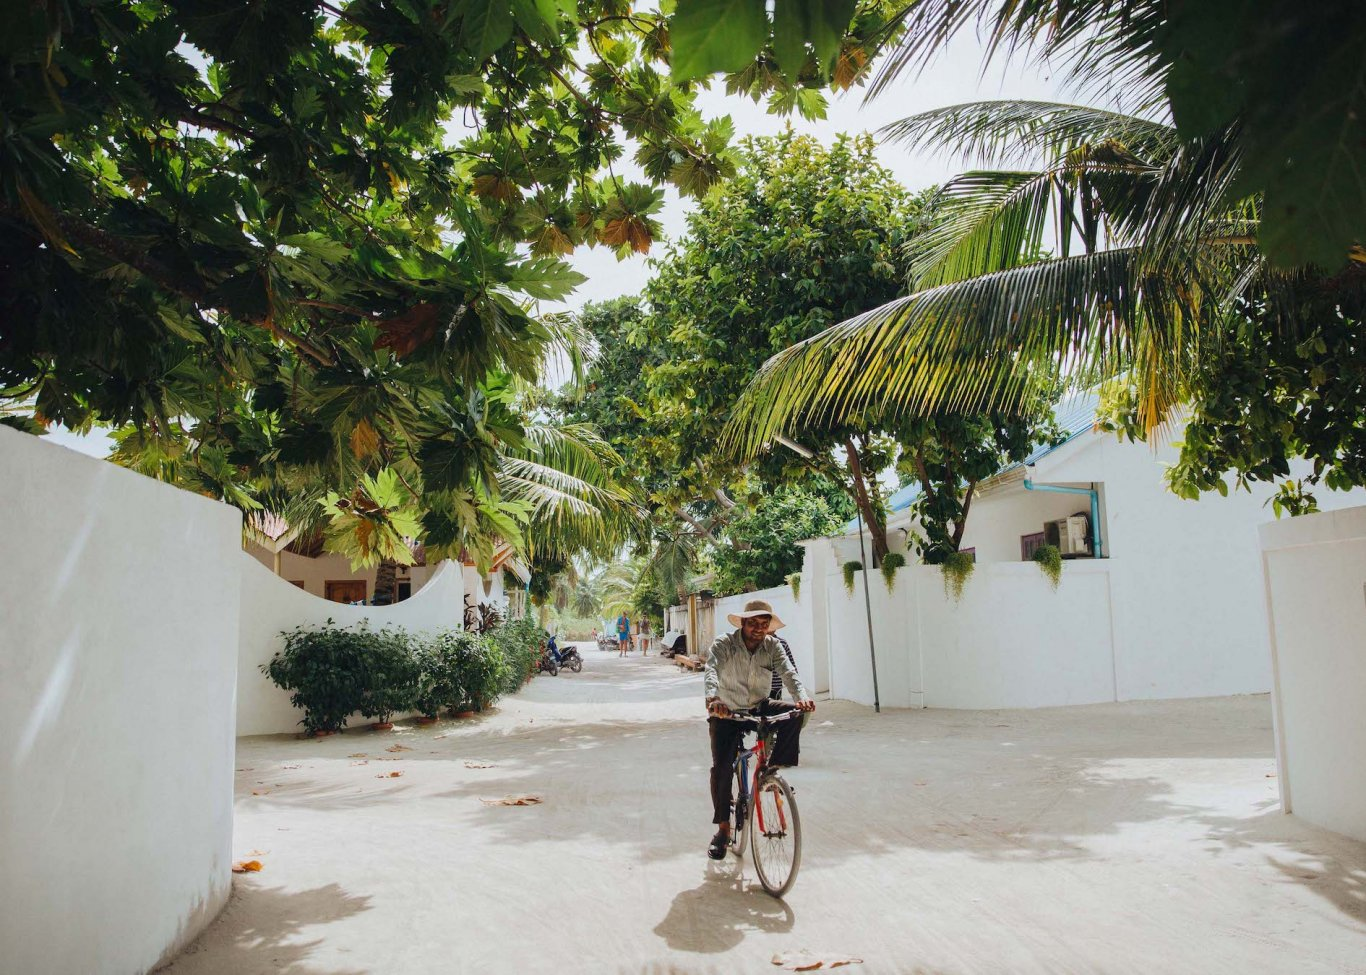 A shot of someone cycling surrounded by lush greenery and palm trees in the Maldives